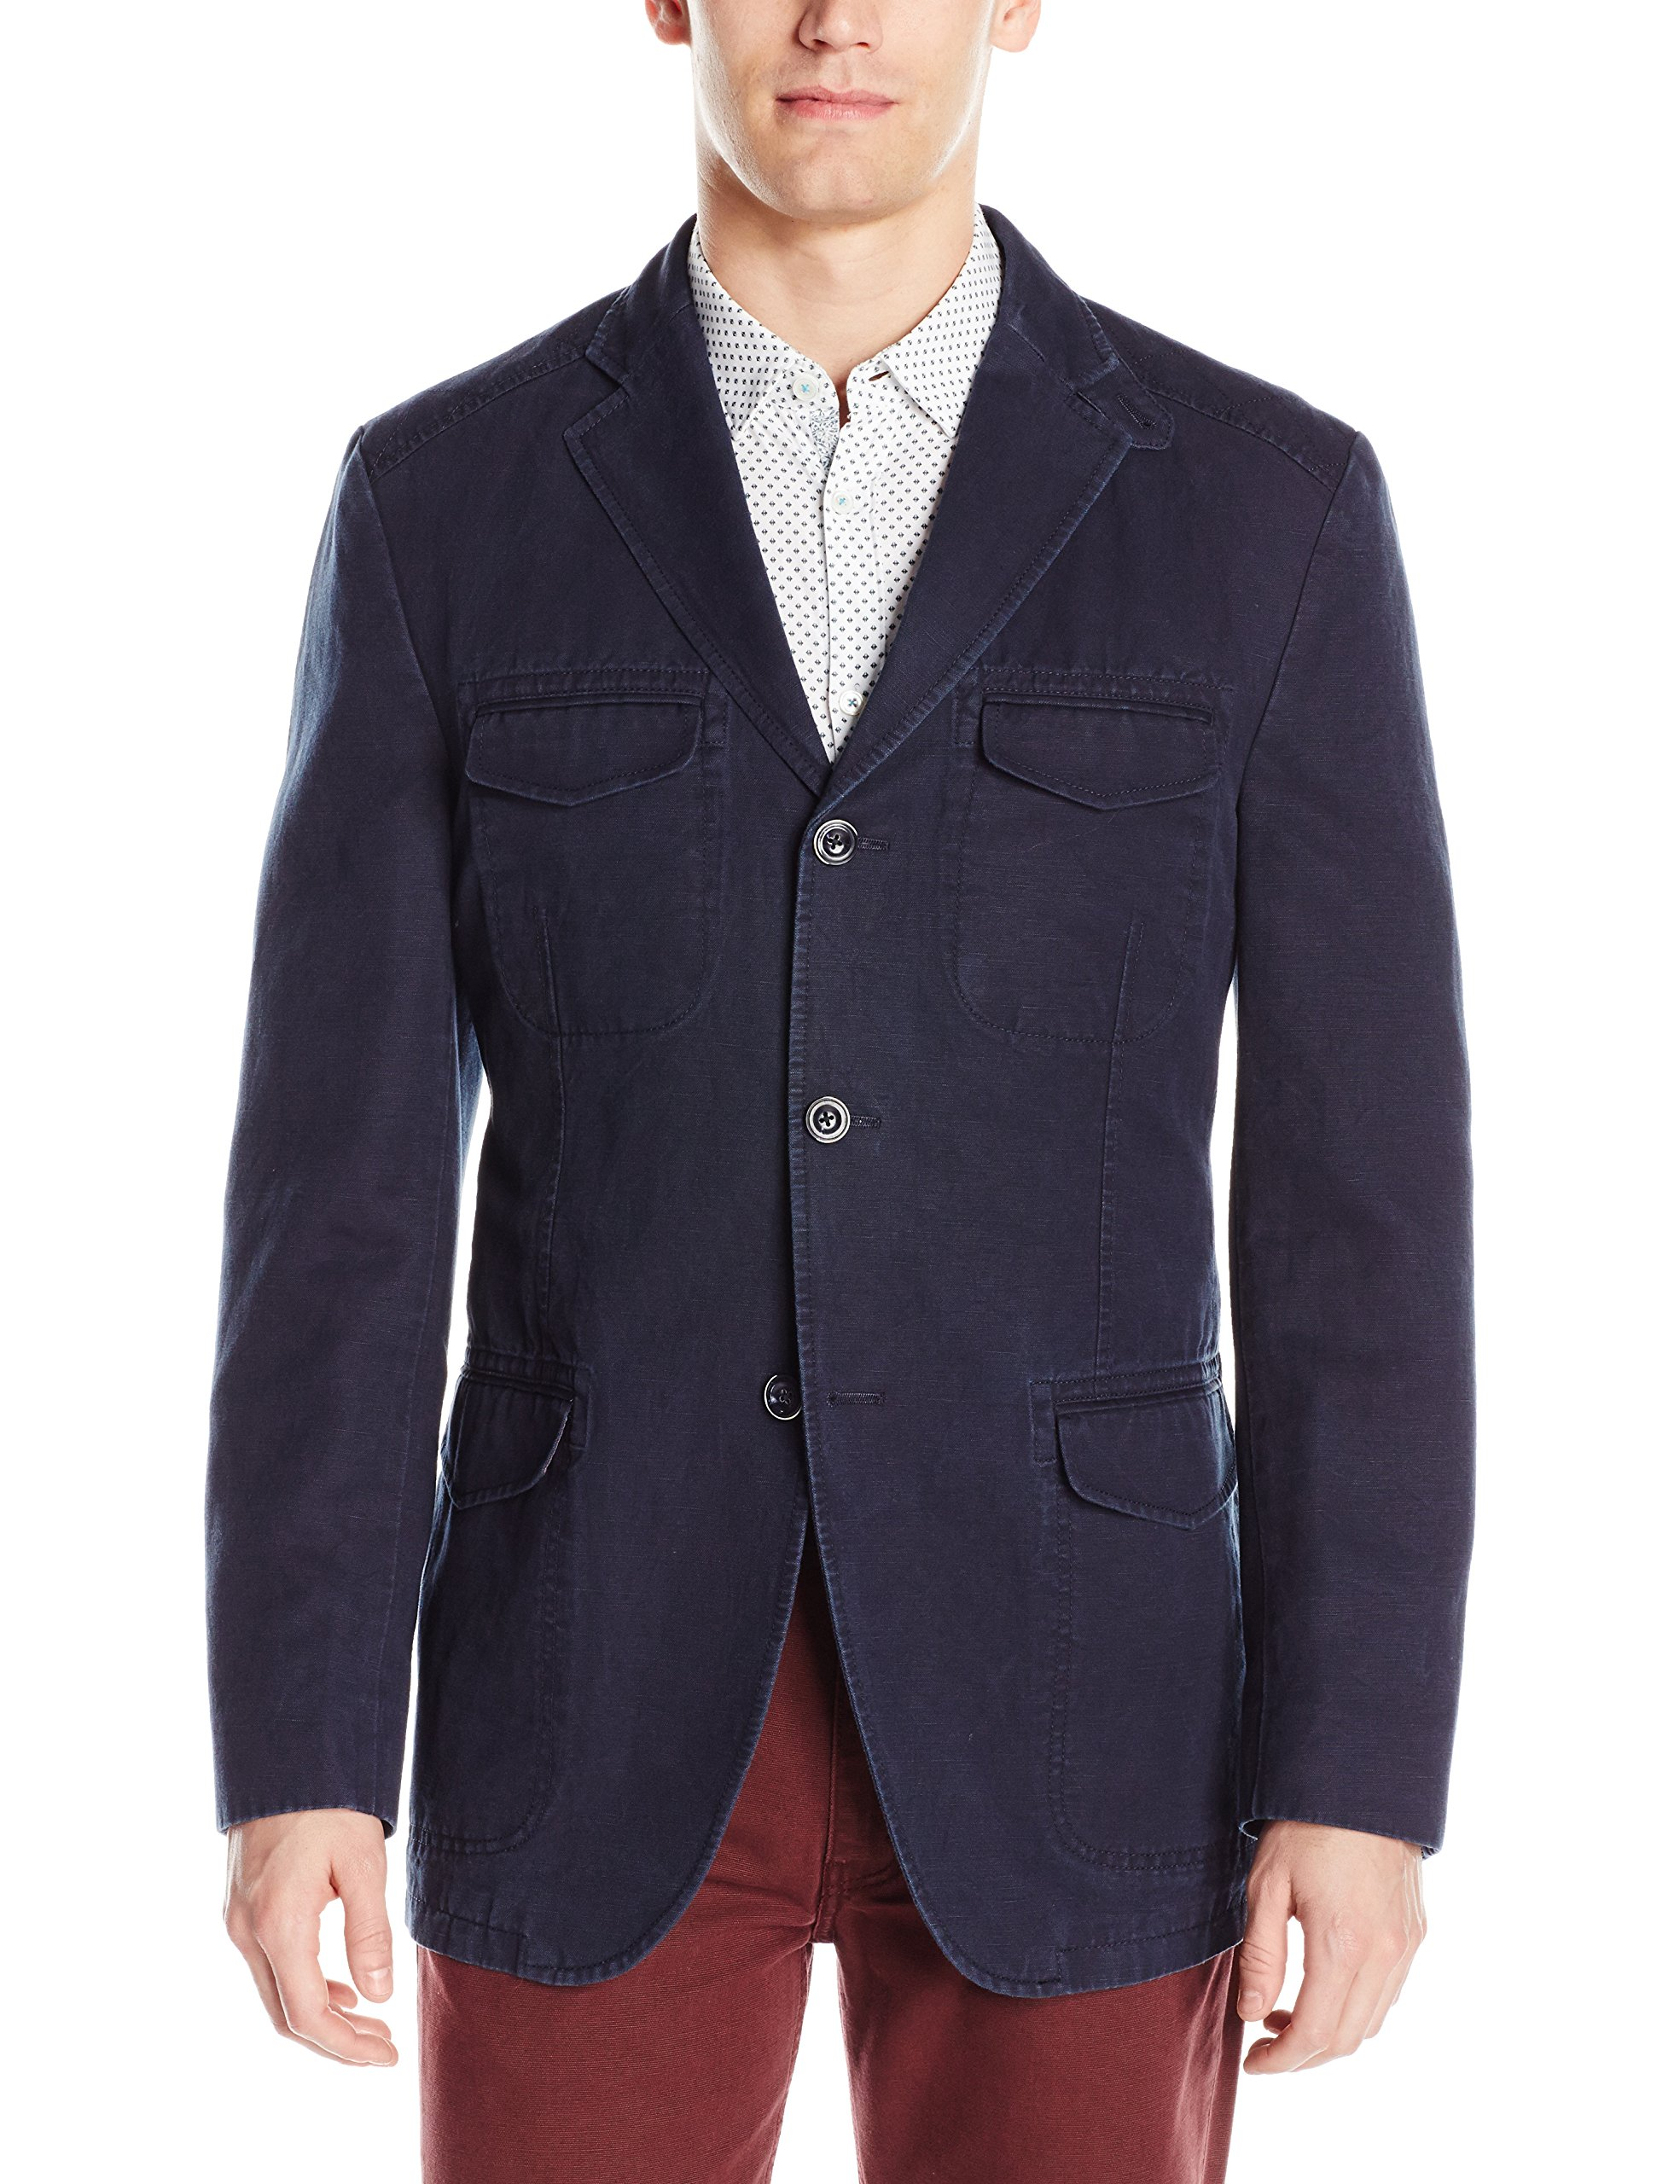 Kroon Men's Hozier Washed Cotton and Linen Italian Fabric, Navy, 44 Regular